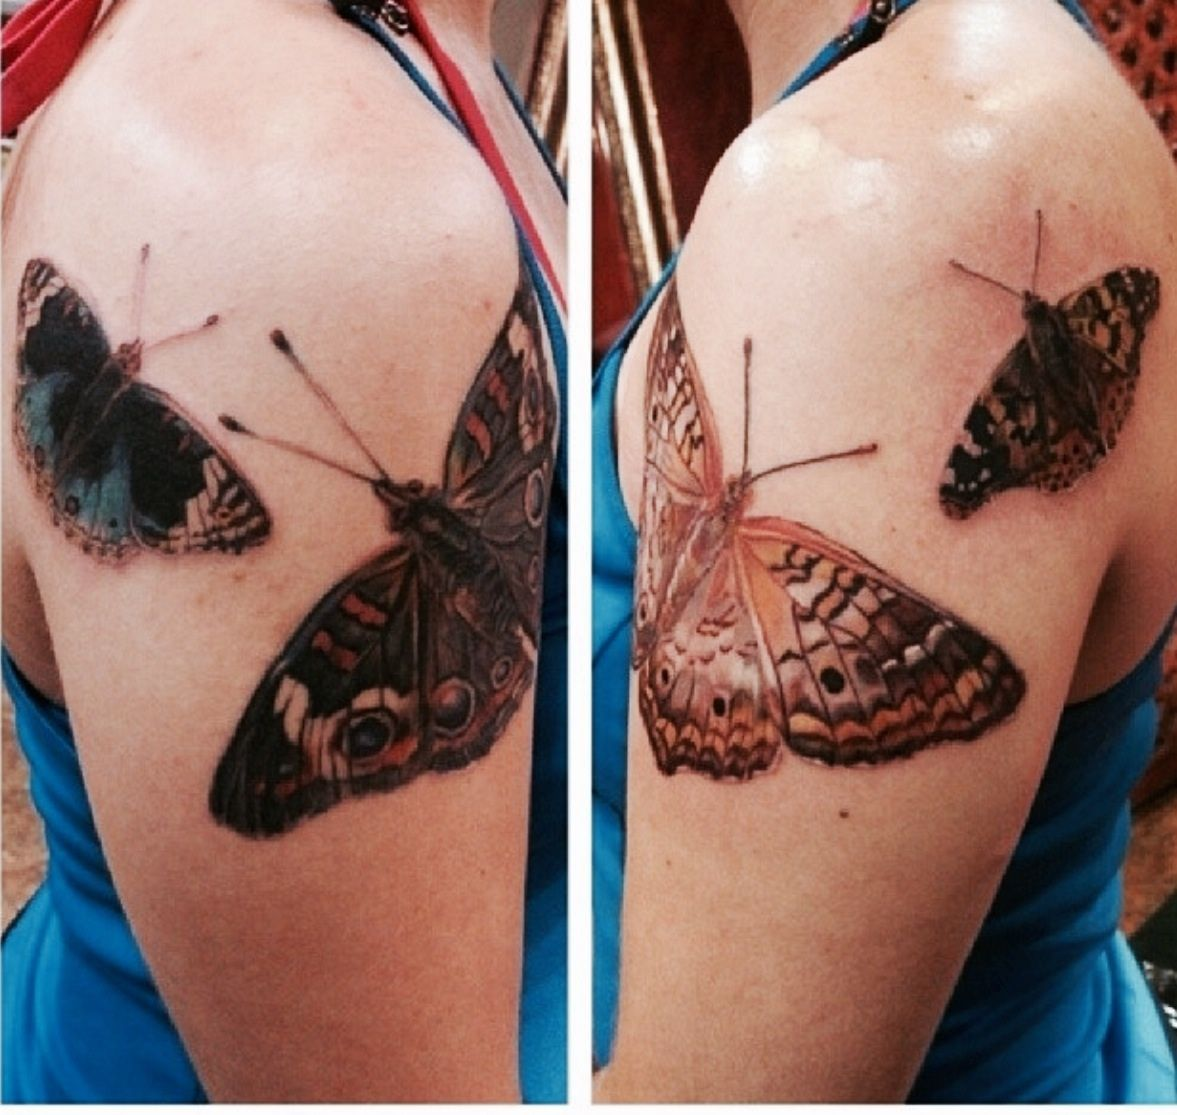 Realistic Butterfly Tattoos On Both Arms These Are My Personal Tattoos Realistic Butterfly Tattoo Butterfly Tattoo Tattoos